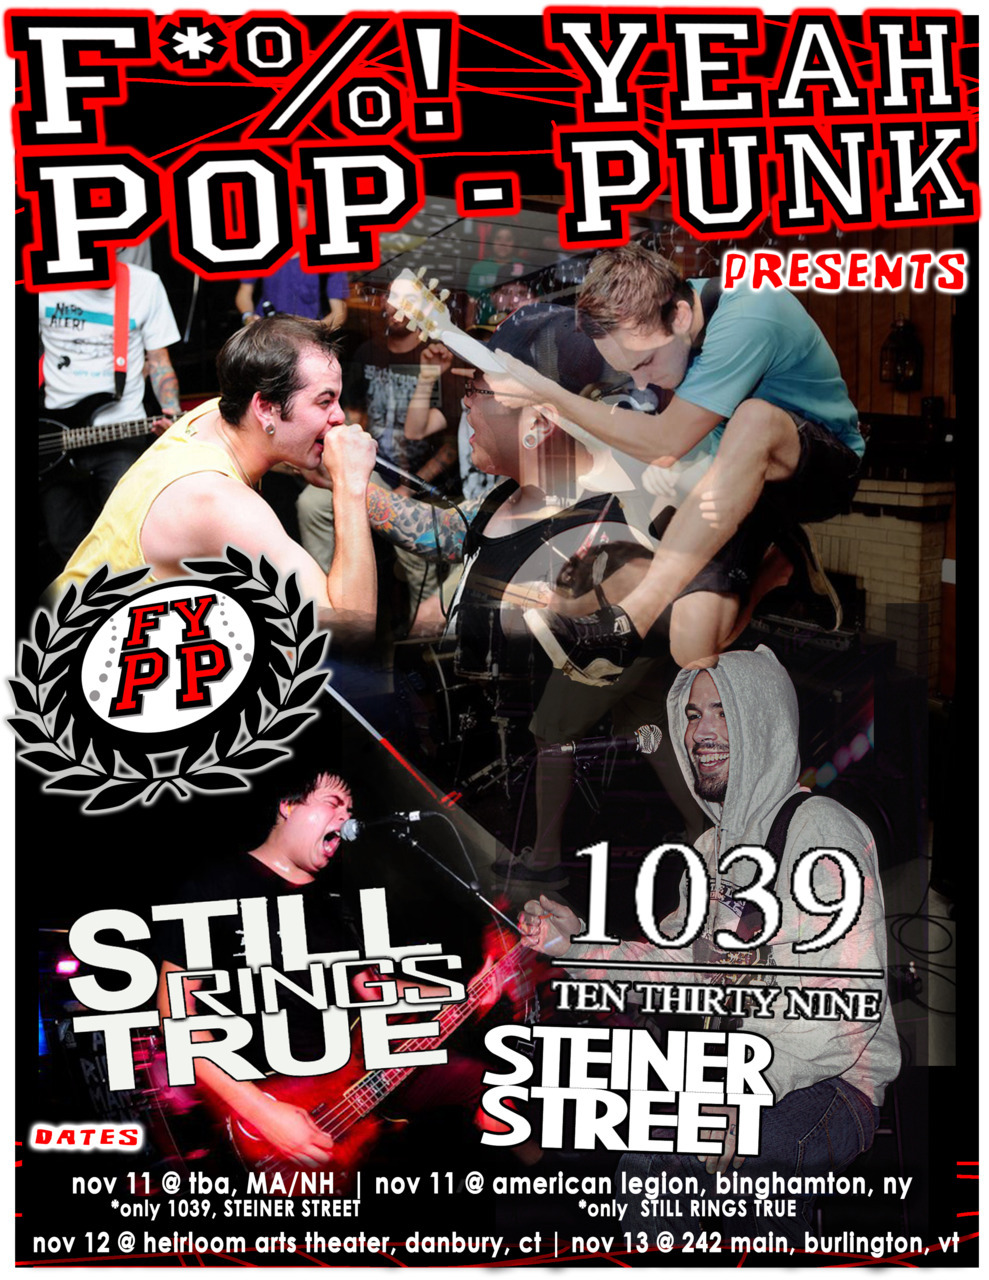 FUCK YEAH POP-PUNK PRESENTS: Still Rings True, Steiner Street and 1039! 11/11 - TBA11/12 - Danbury, CT @ Heirloom Arts Theatre11/13 - Burlington, VT @ 242 Main Still Rings True will be heading out on tour with Maker and Rust Belt Lights in late December/early January, in support of their new live album, Revolution Starts Underground. Steiner Street just got off a tour with American Verse, and have been working hard on their full length debut, which will be released in December. 1039 are playing a string of New England shows the next few days as well as putting out a new self released album out later this fall, titled The Beat.  Click HERE to attend any one of these shows! If you don't head out, you're going to miss some of the greatest pop-punk shows this fall.